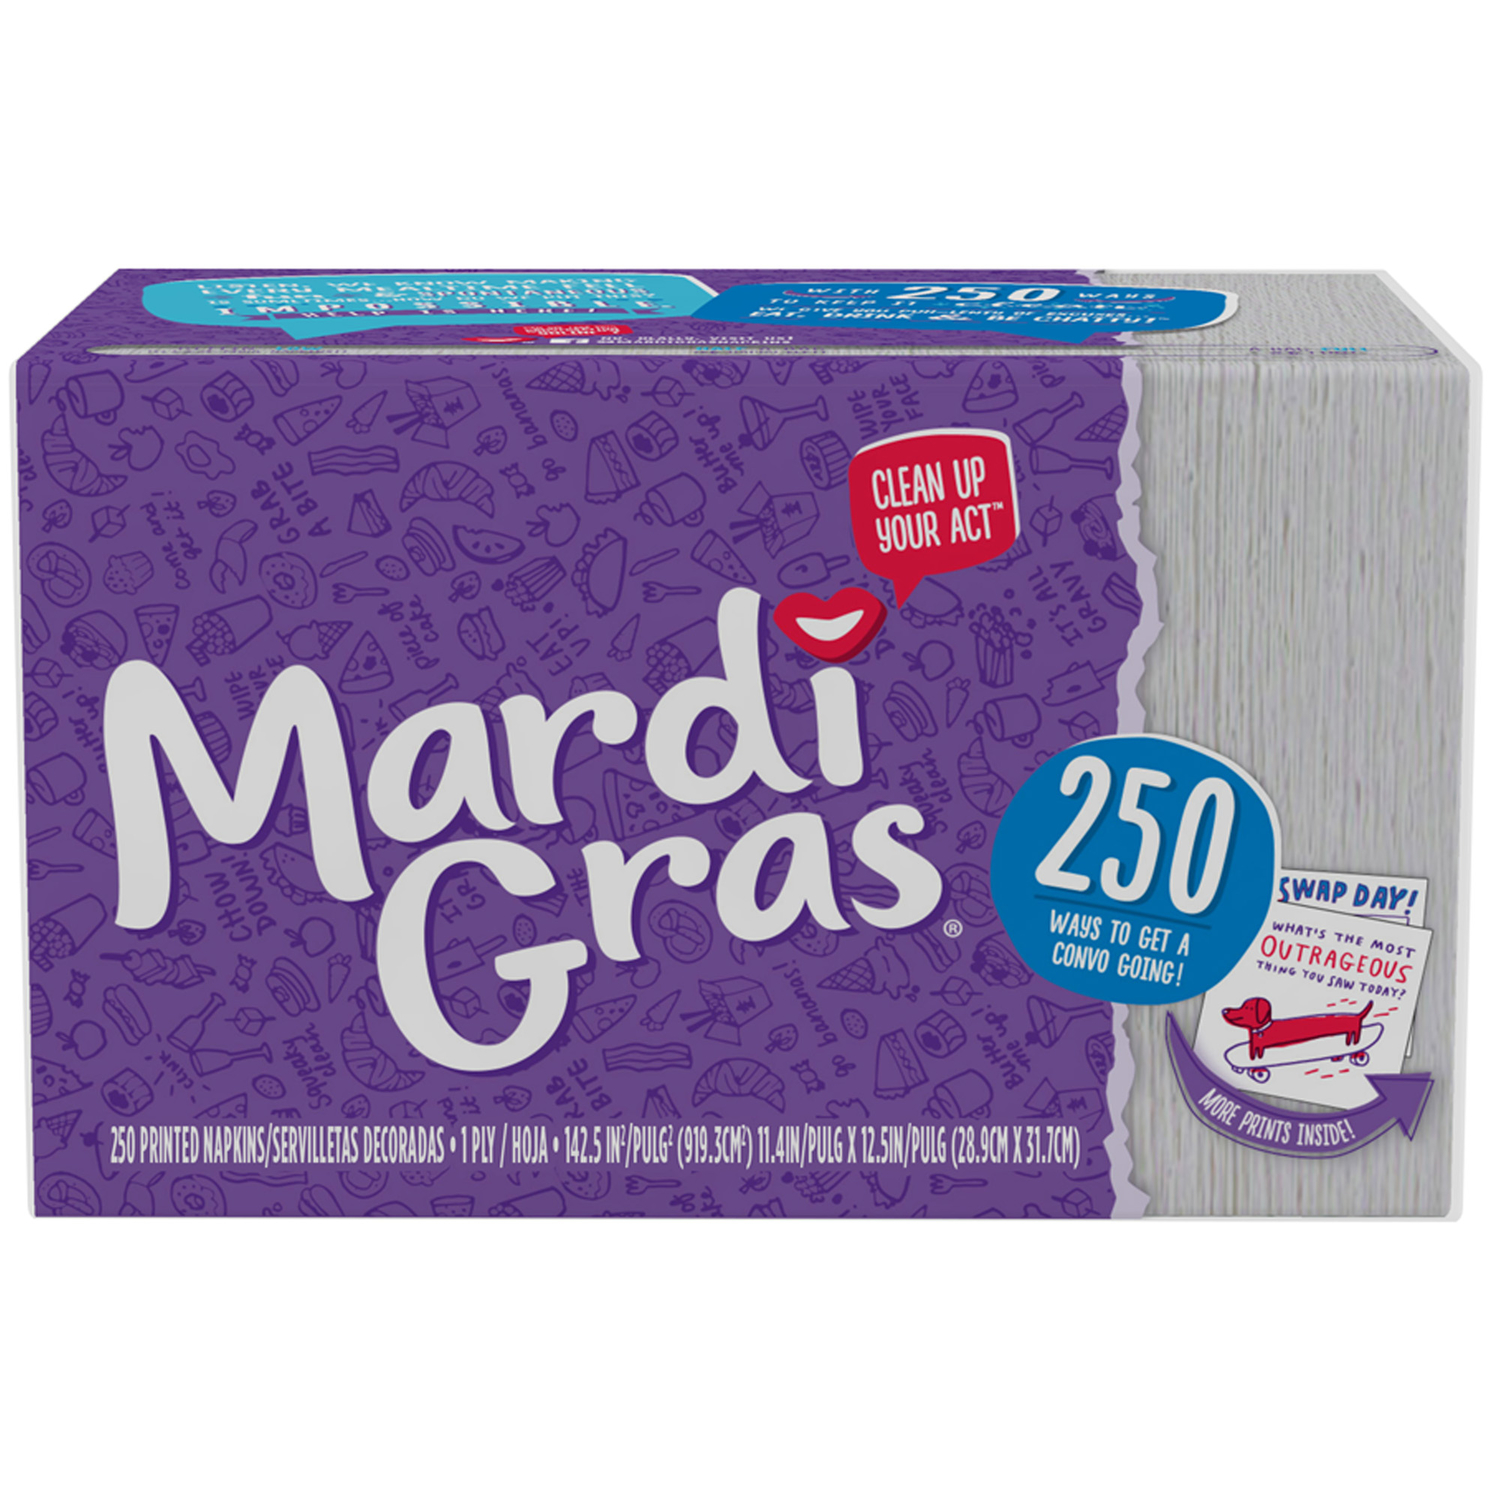 Mardi Gras  Dinner Napkins  250 sheet 1 Ply 250 sheet